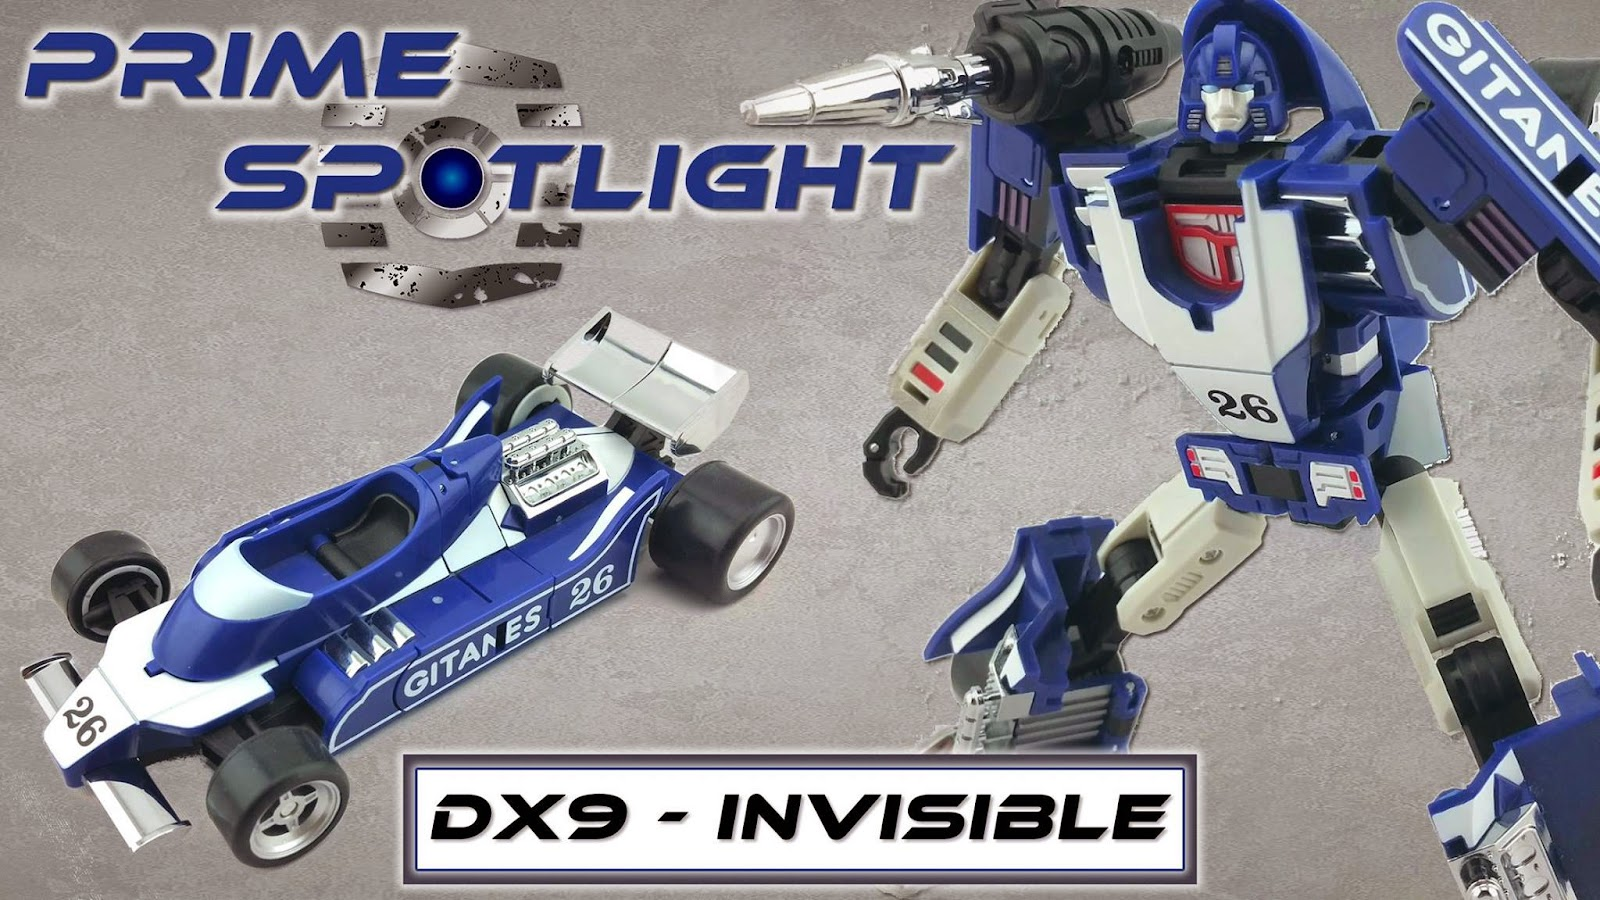 http://www.thechosenprime.com/DX9D03Invisible